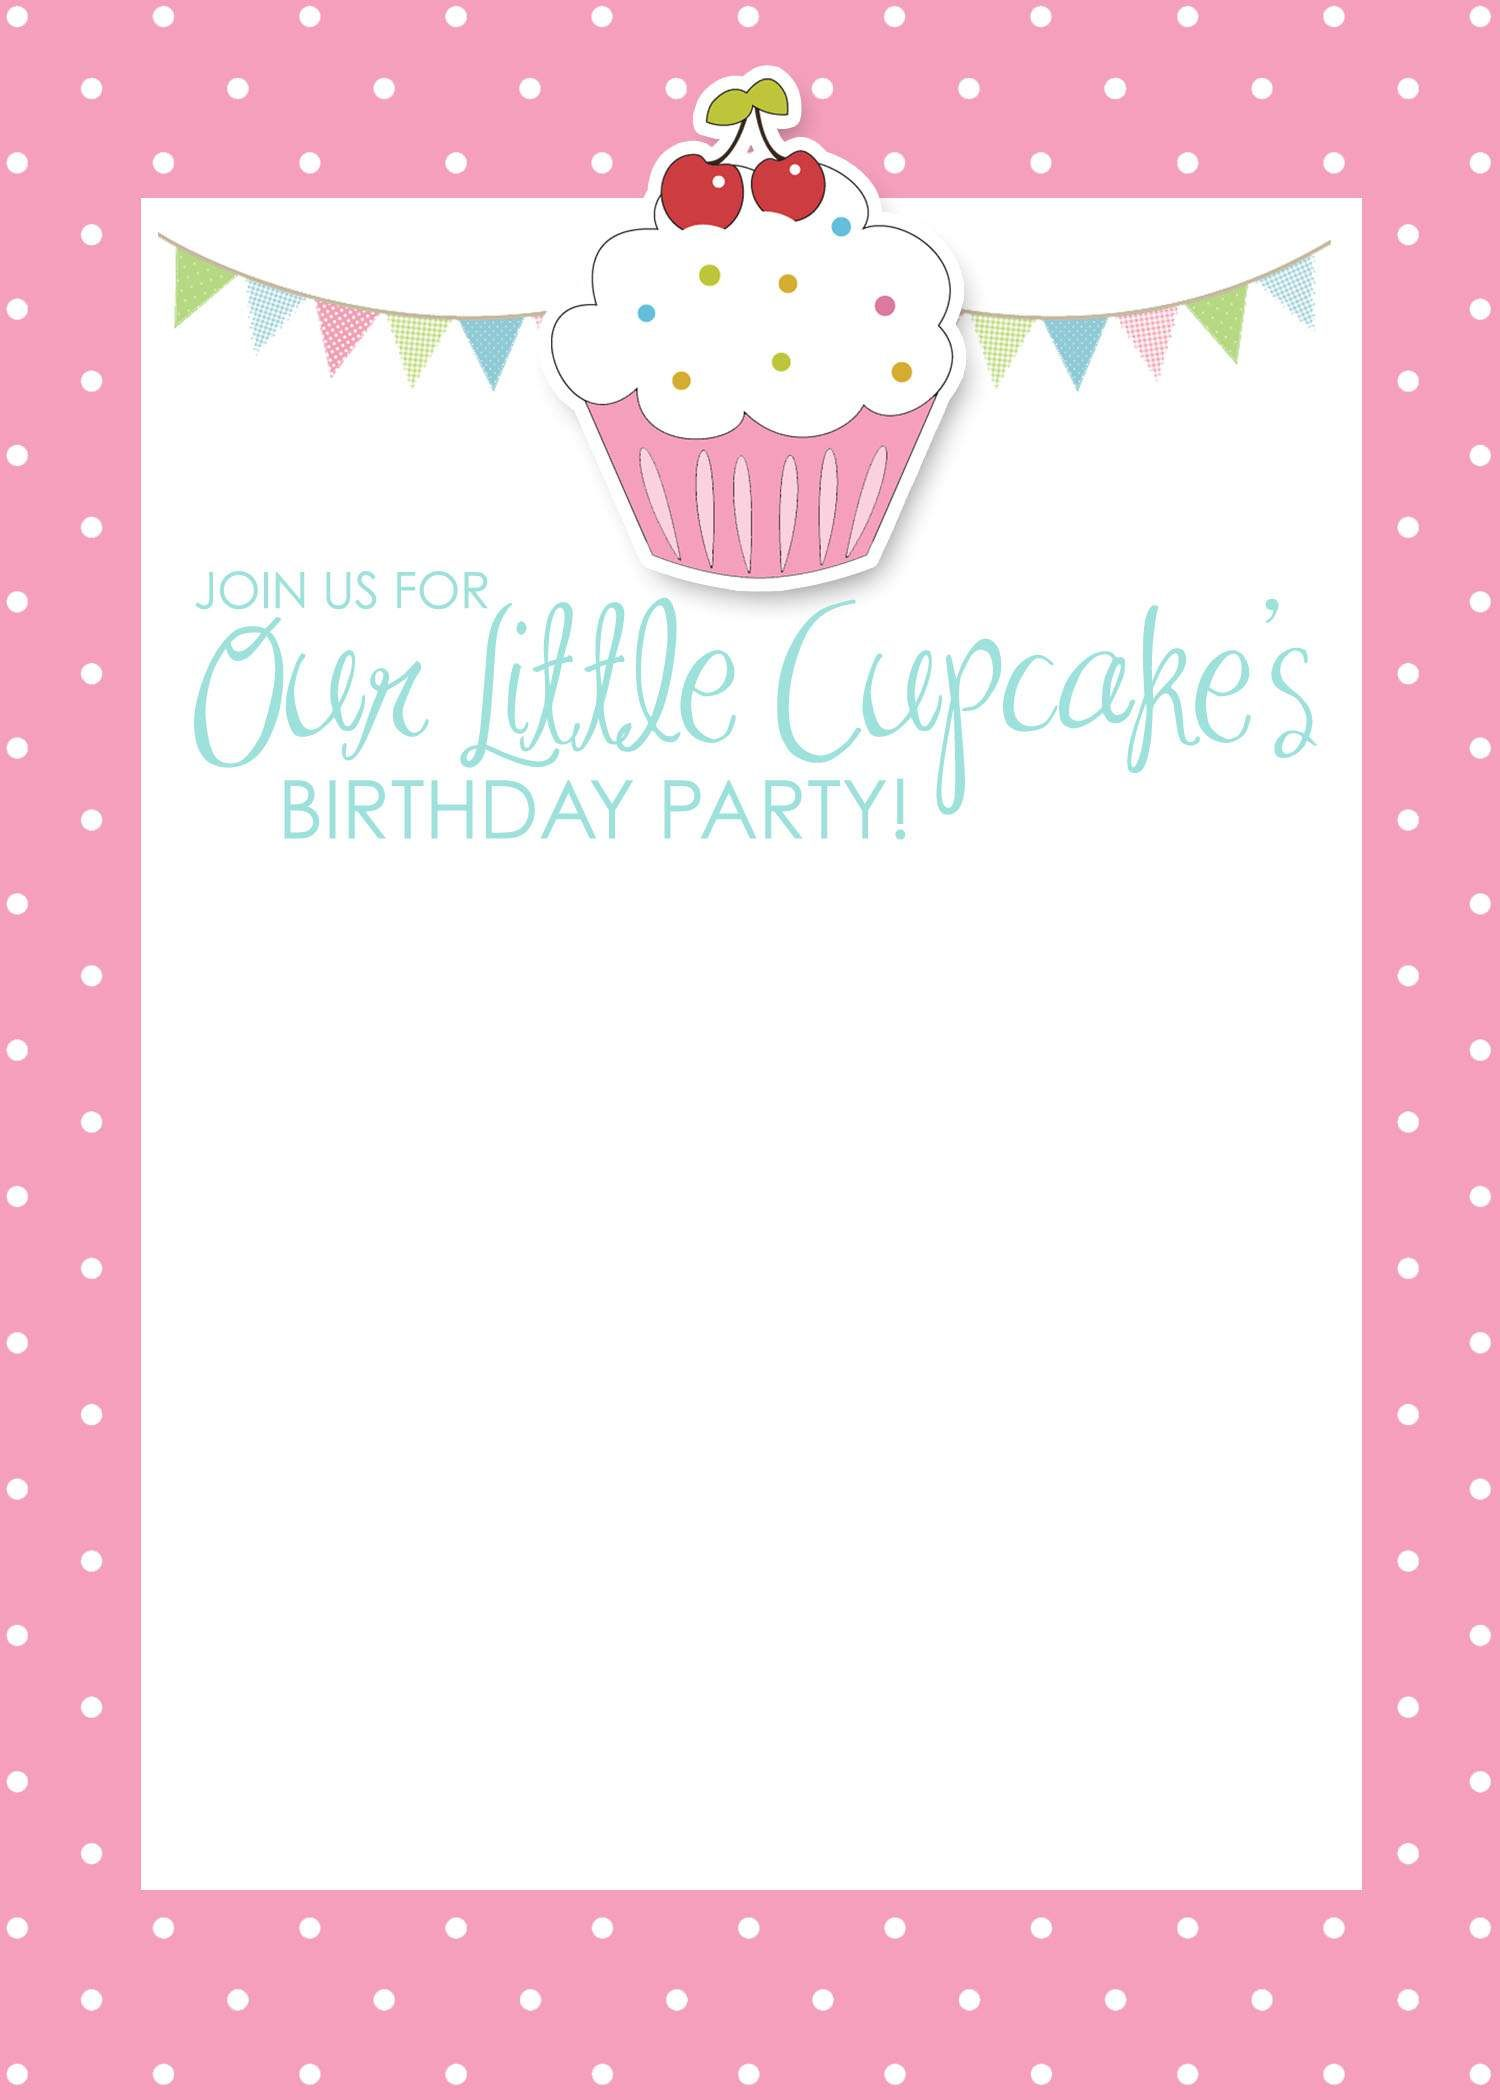 Image For Printable Blank Birthday Party Invitations Birthday Invitation Card Template Invitation Card Birthday Birthday Invitation Templates